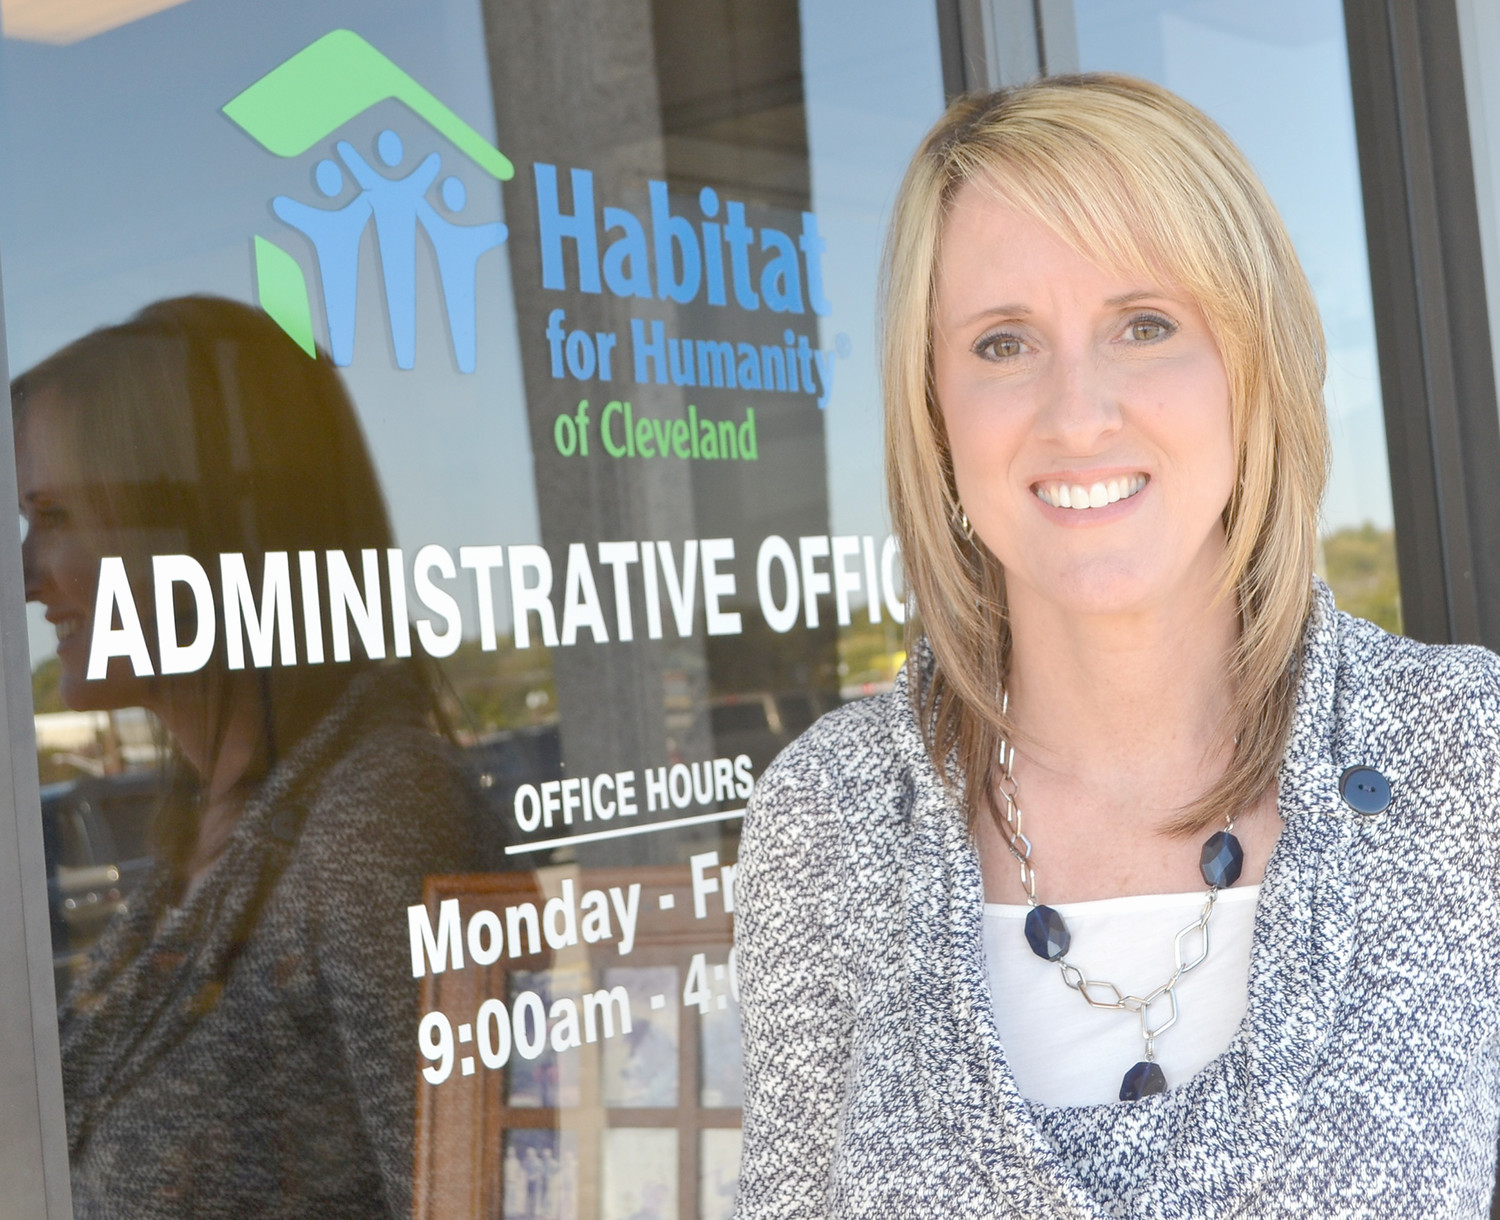 TAMMY JOHNSON was a leading part of nonprofit news in 2018 when she was named the new executive director at Habitat for Humanity of Cleveland. She had formerly served the nonprofit as its resource development director.